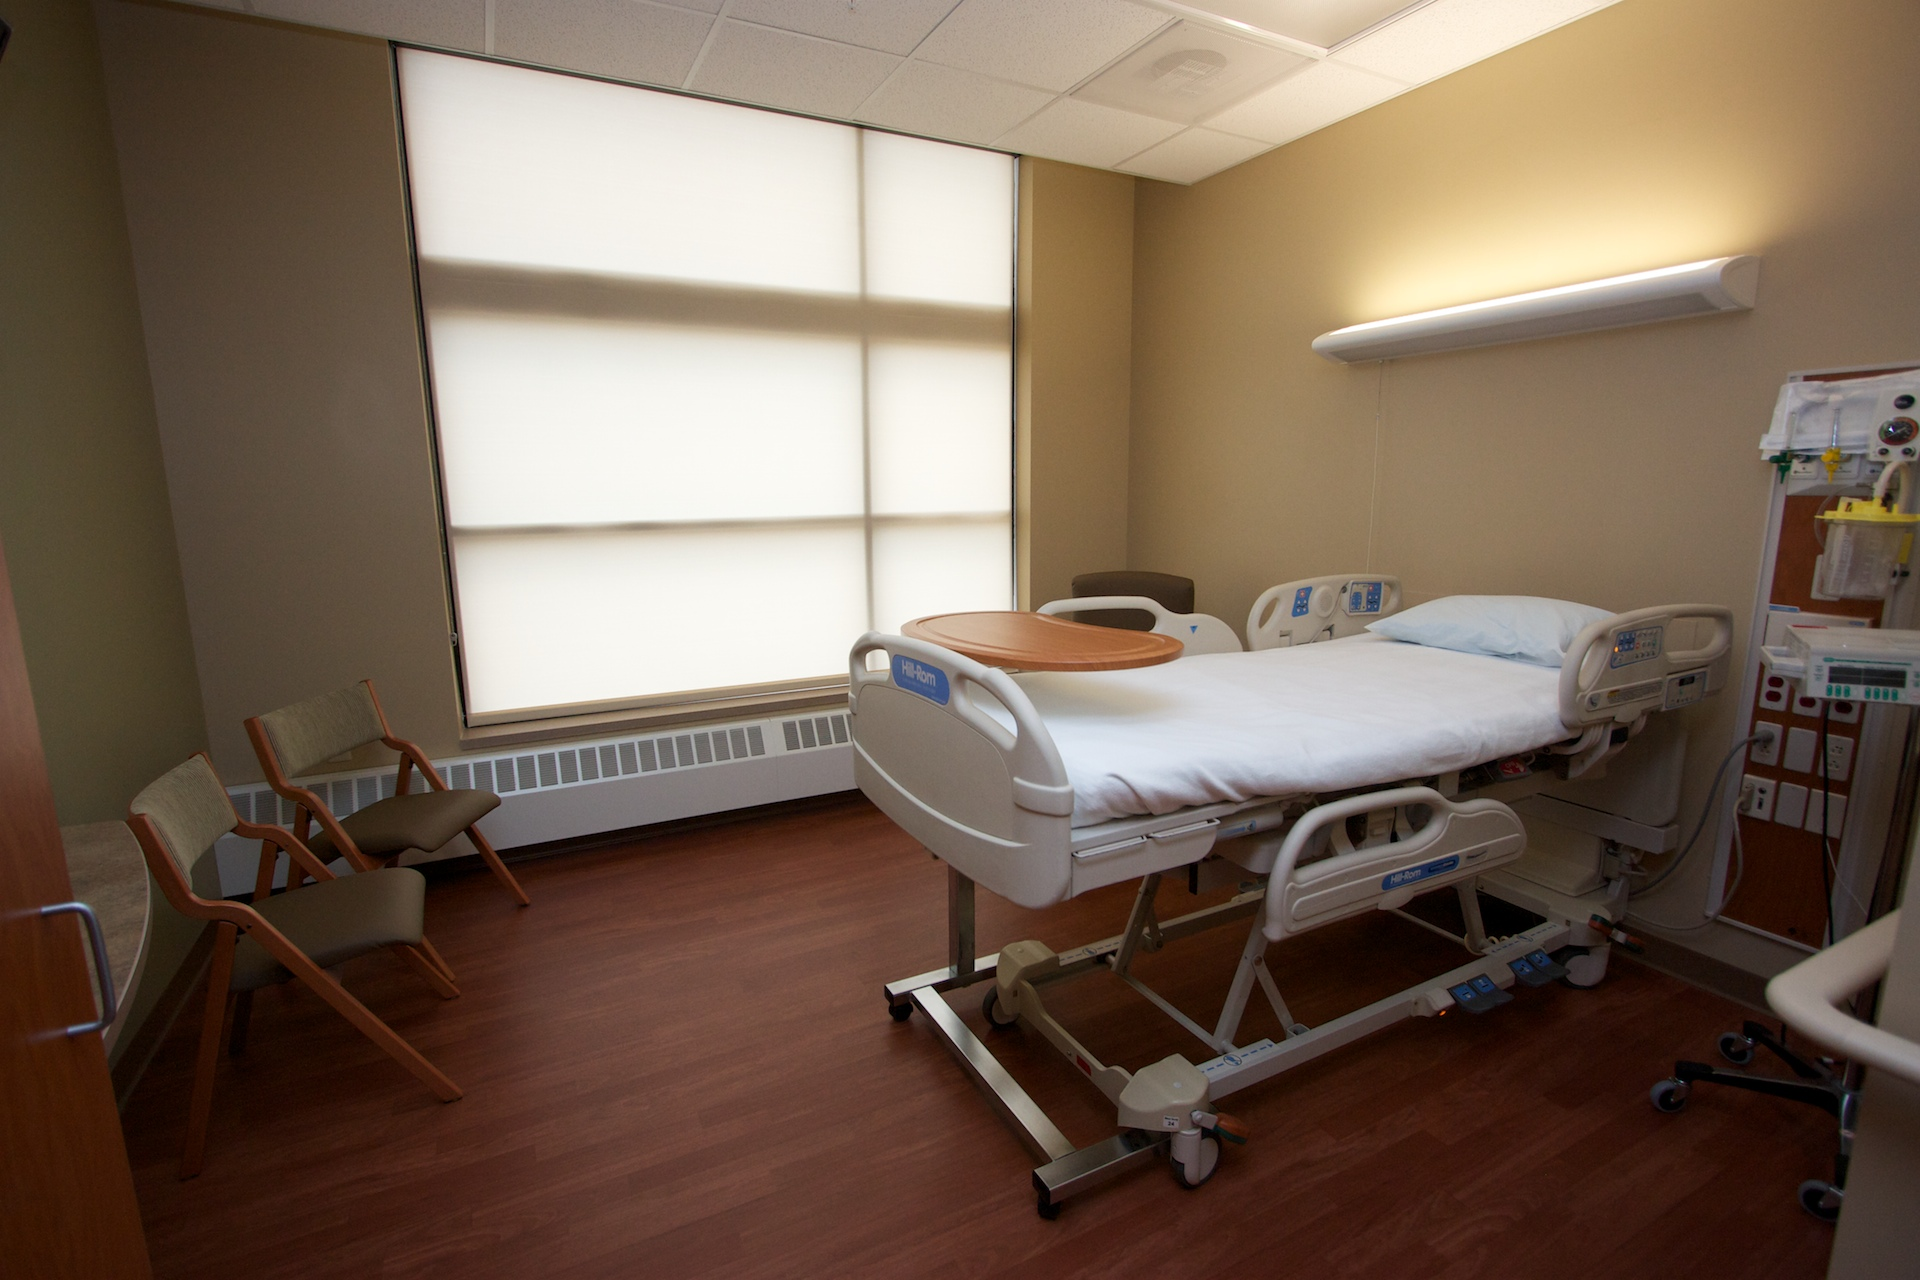 A private Med Surg room...one of 44 beds in Med Surg dept & 4 beds in ICU.